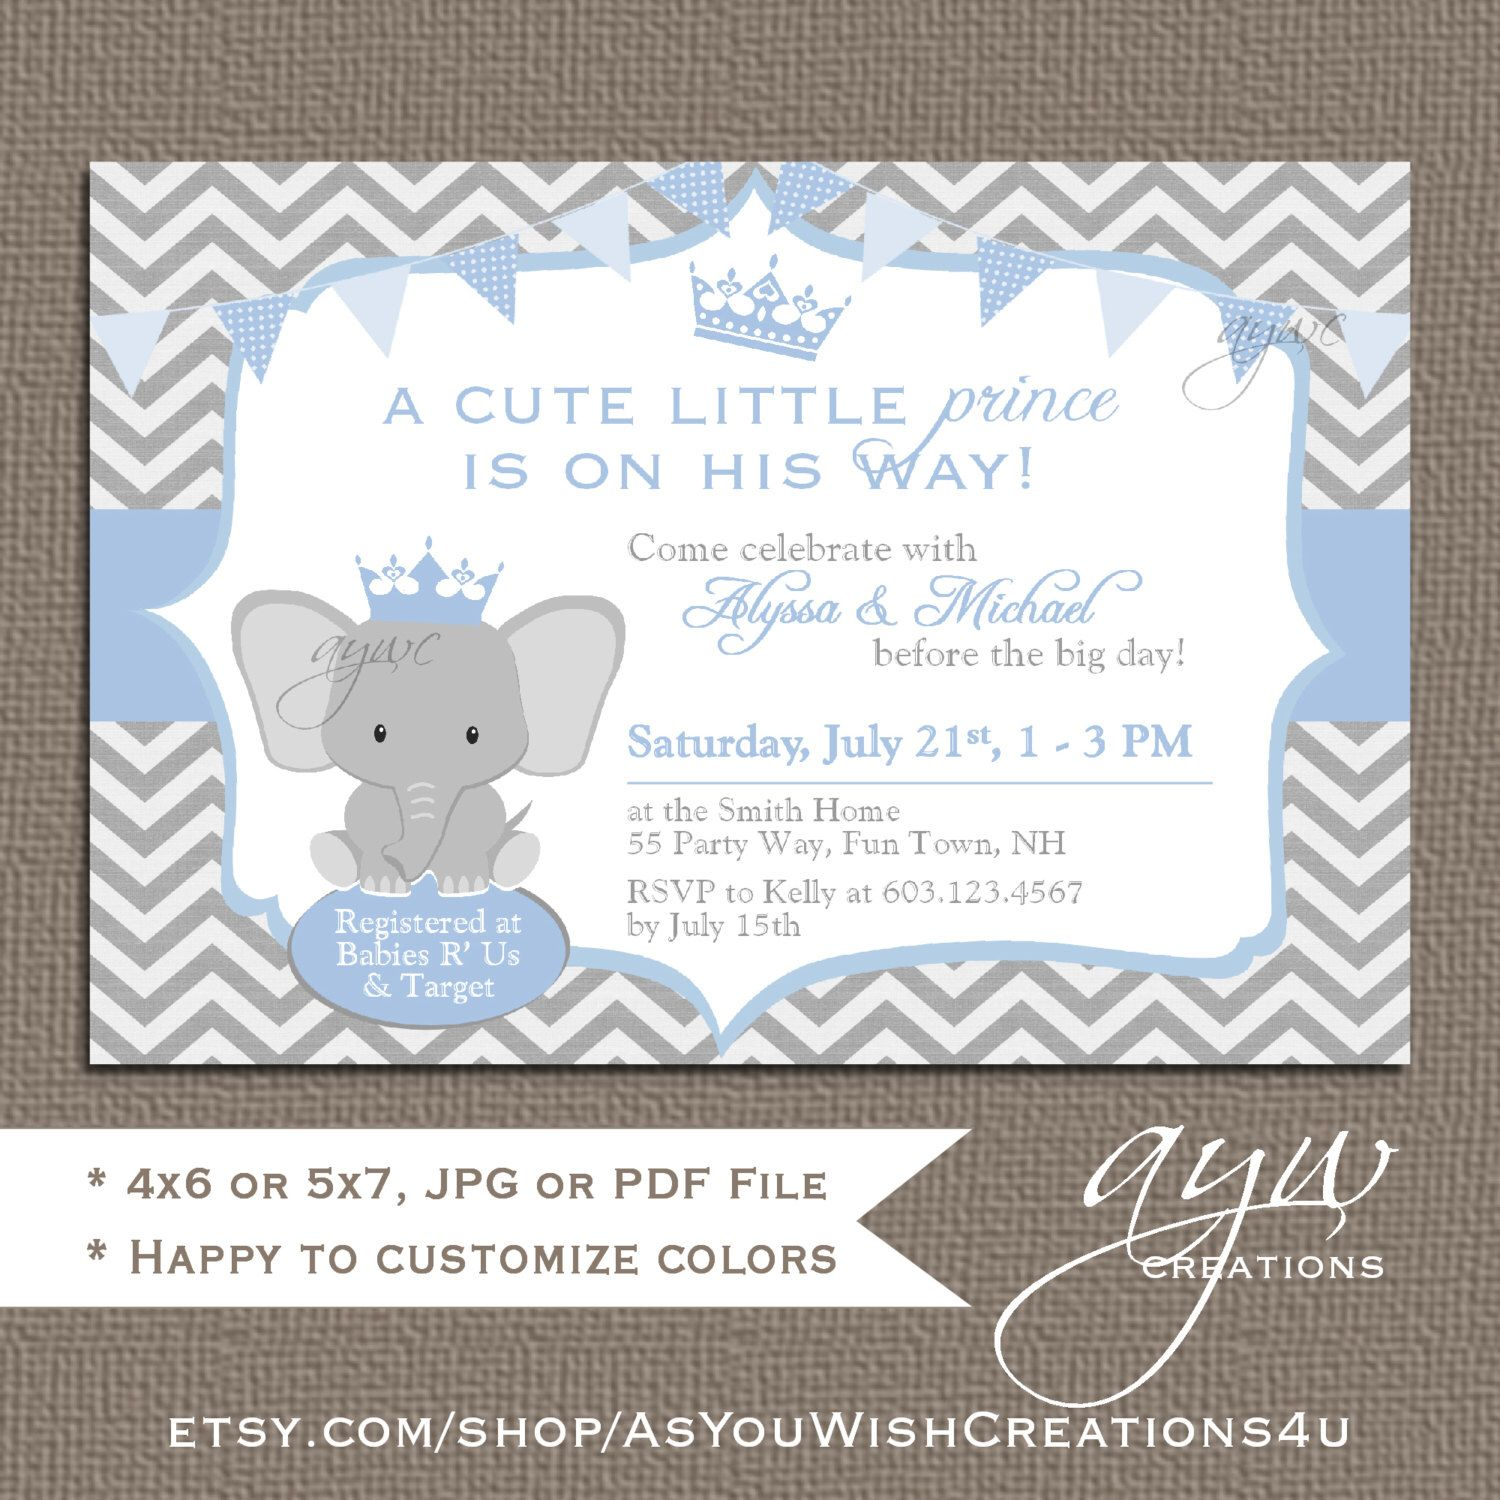 home create templates anouk tips to invitations elephant shower baby with made easy how